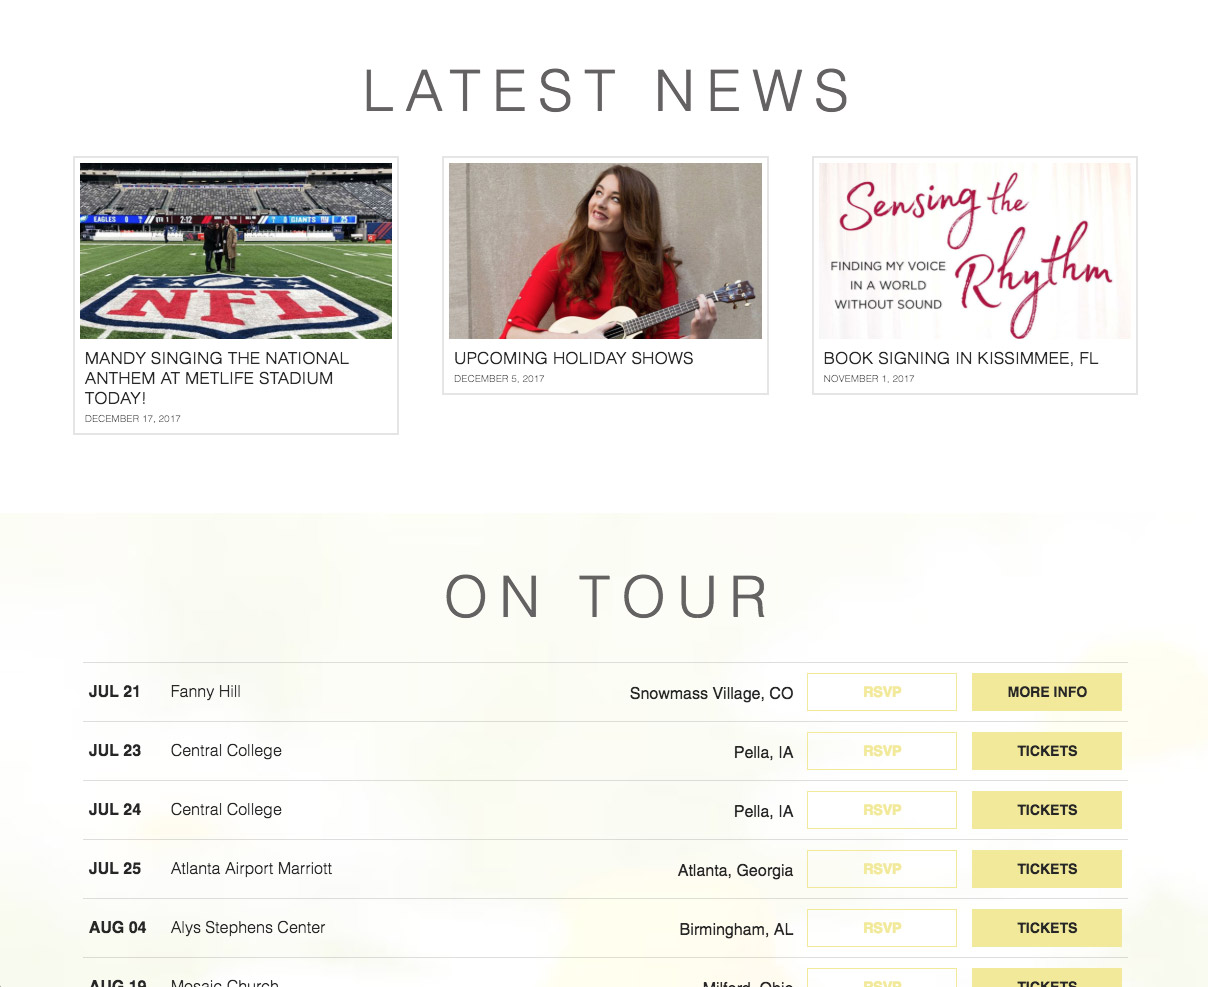 mandy harvey website screenshot of latest news and tour dates